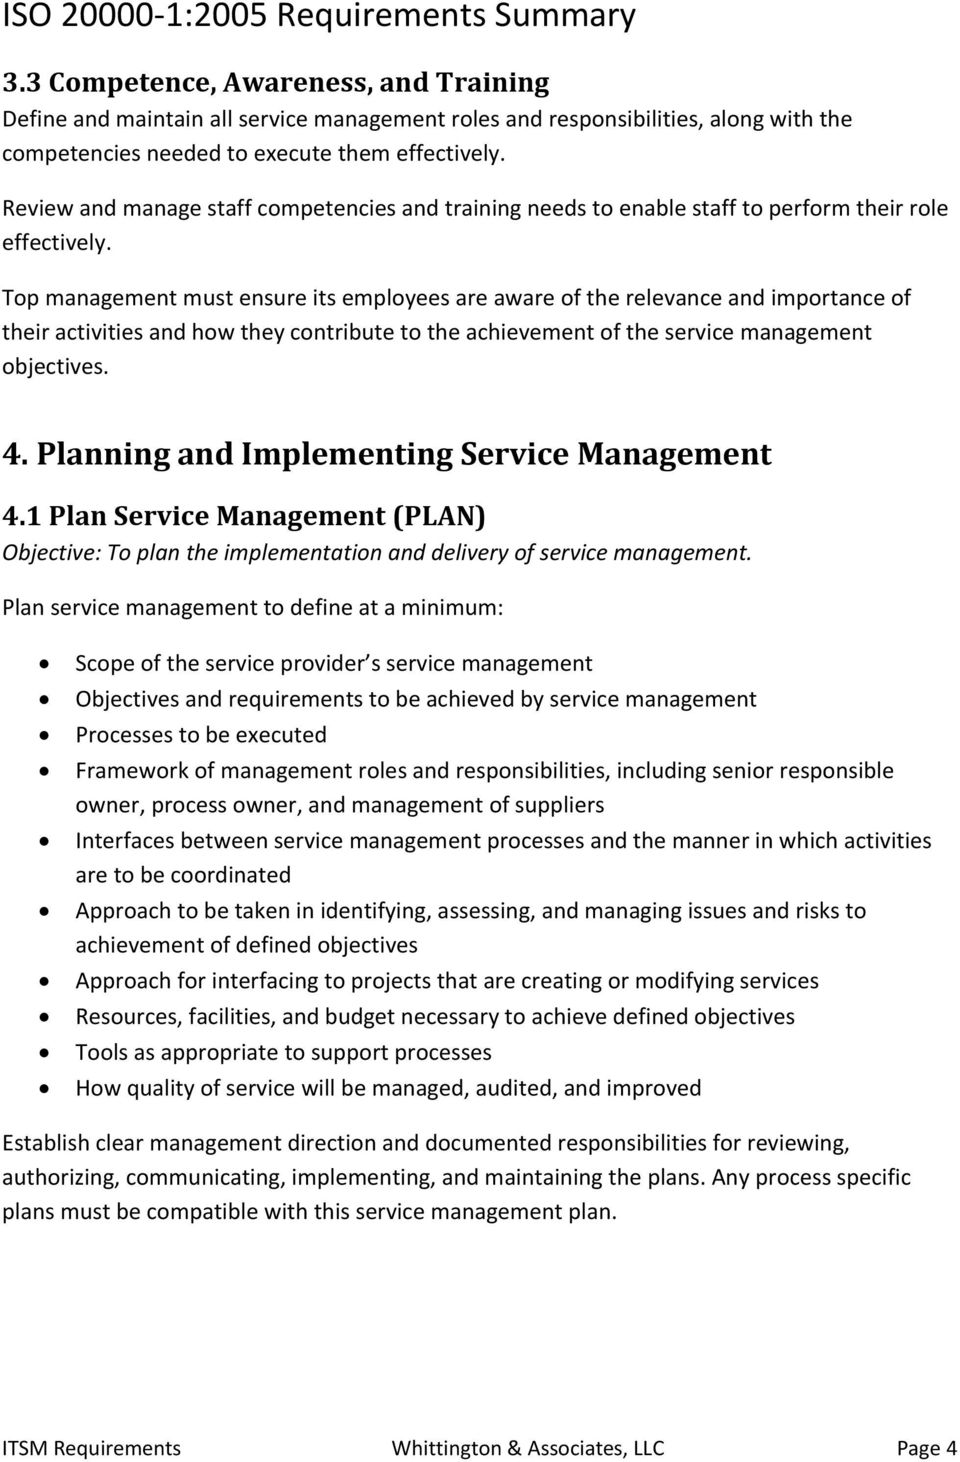 Top management must ensure its employees are aware of the relevance and importance of their activities and how they contribute to the achievement of the service management objectives. 4.